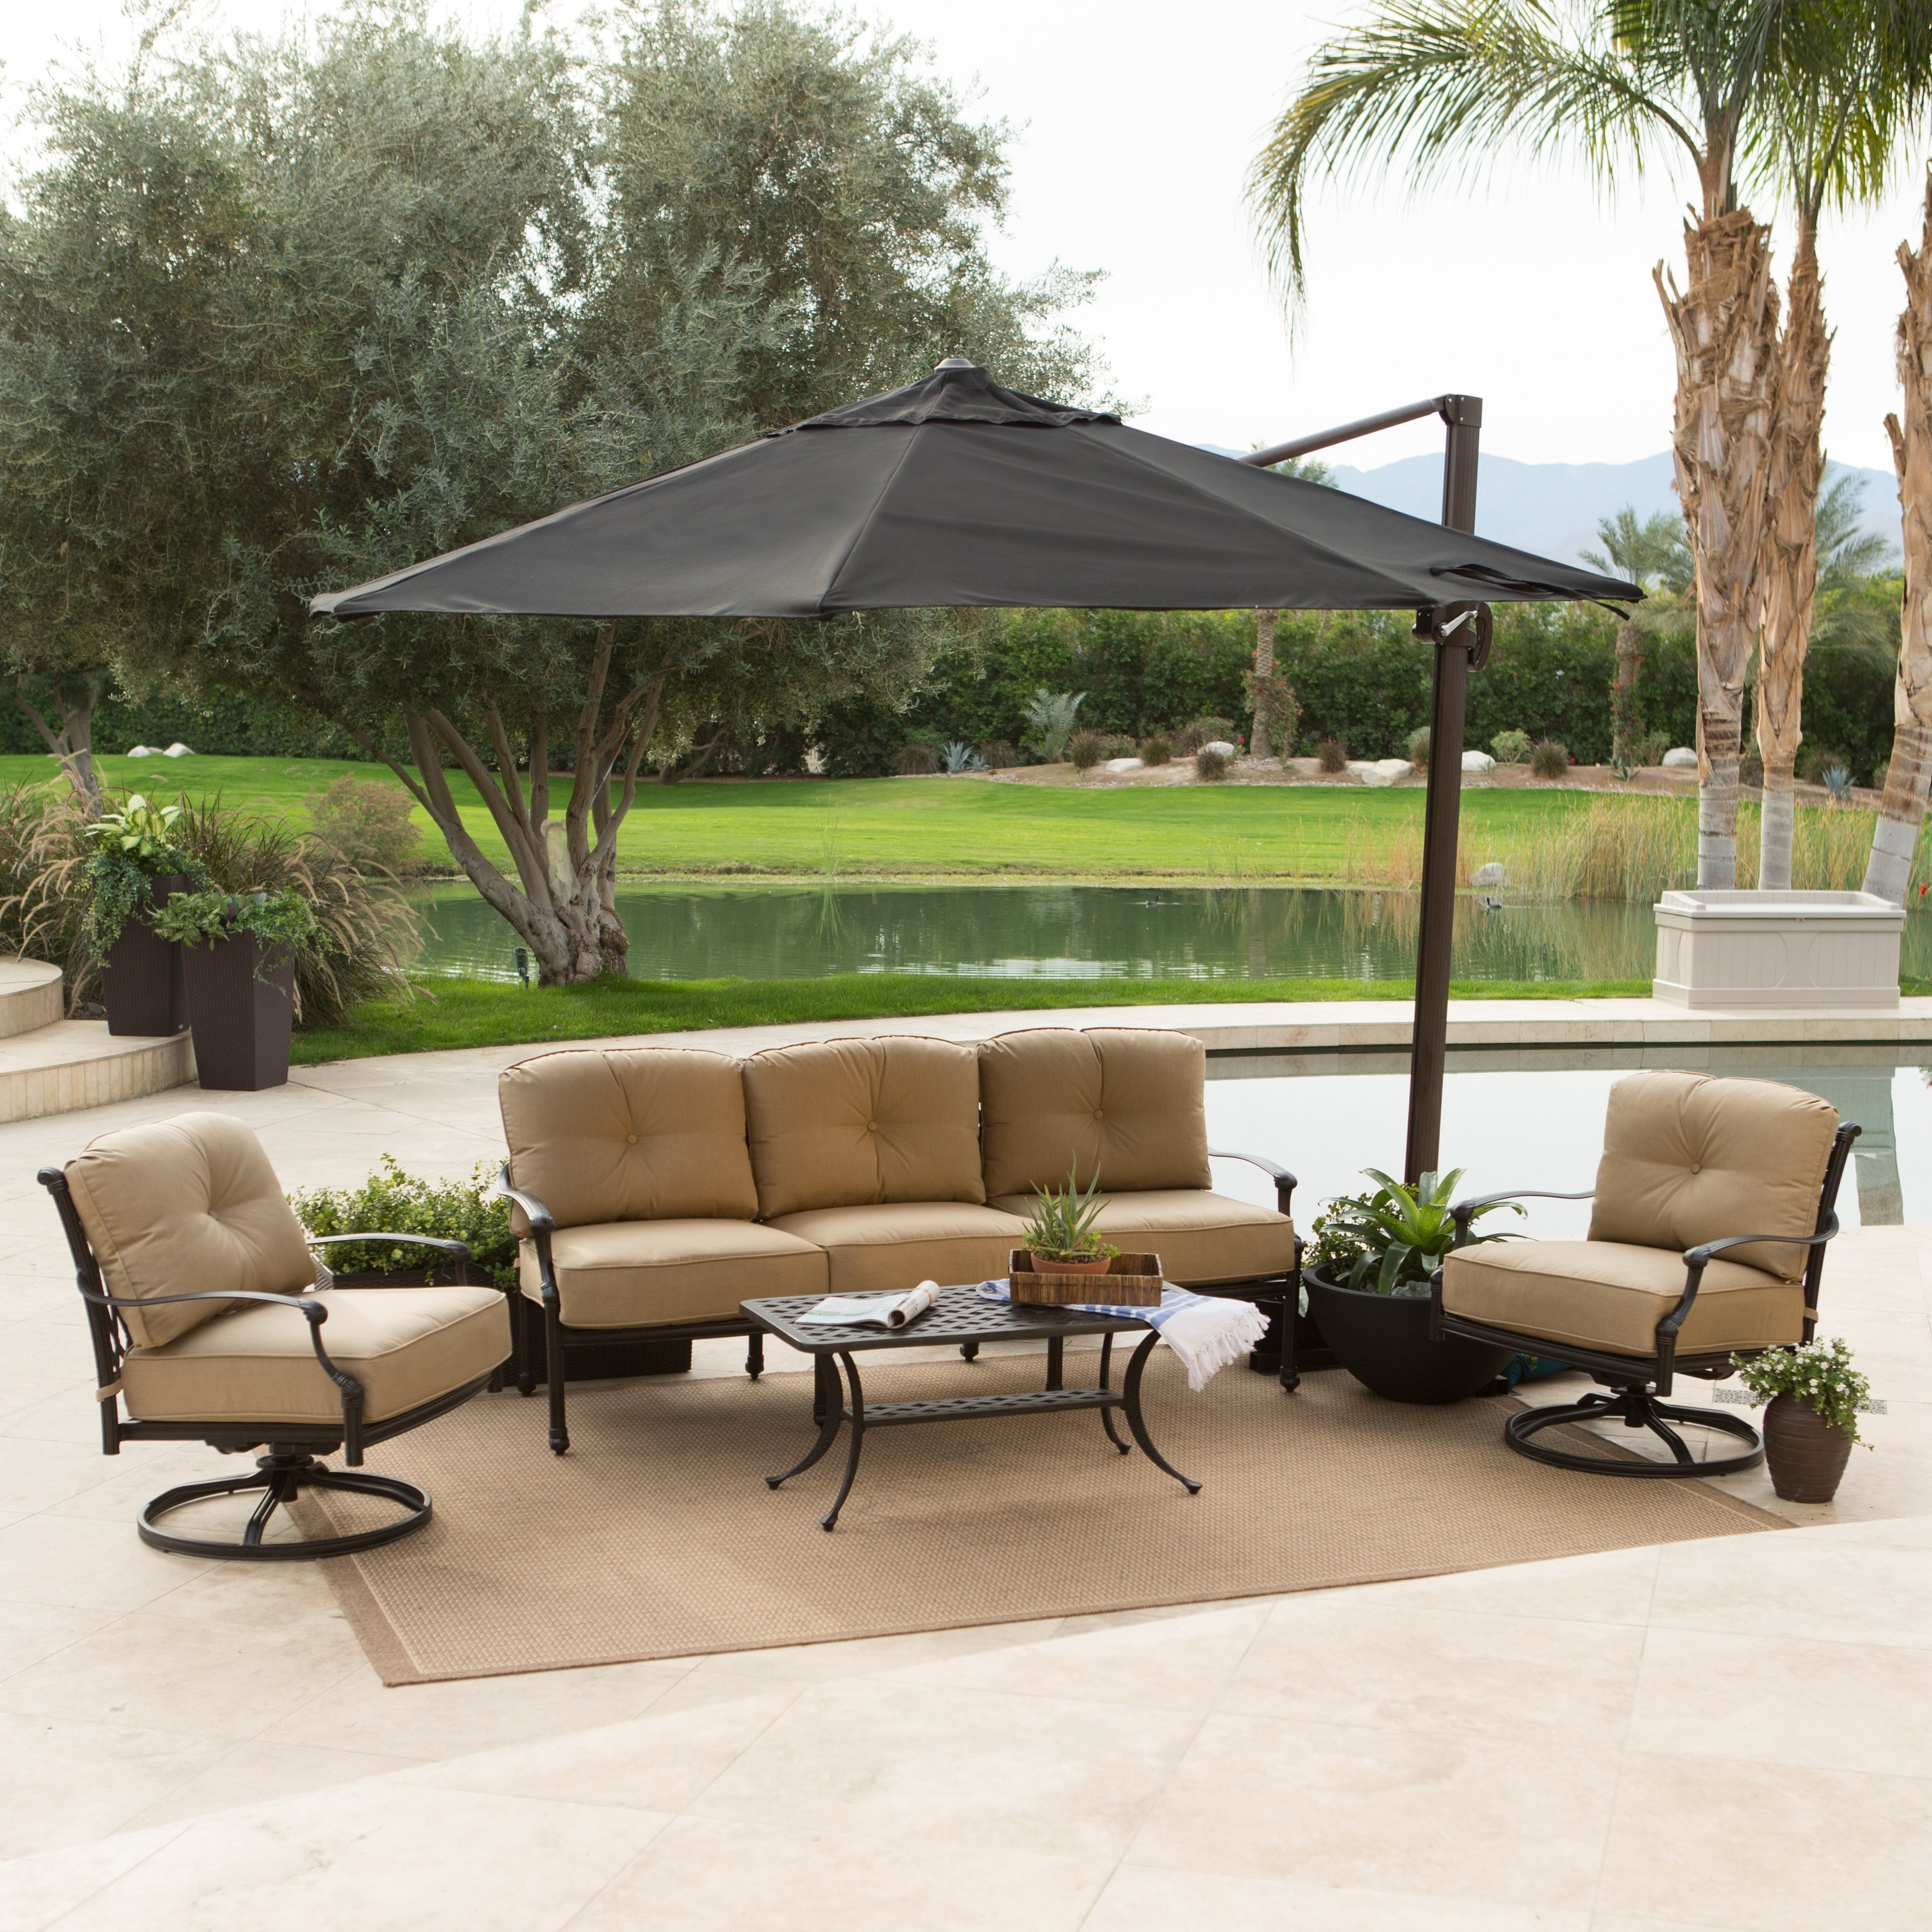 Cheerful Outdoor Patio Design With Chairs And Table Sets Protected For Fashionable Rectangular Offset Patio Umbrellas (View 1 of 20)